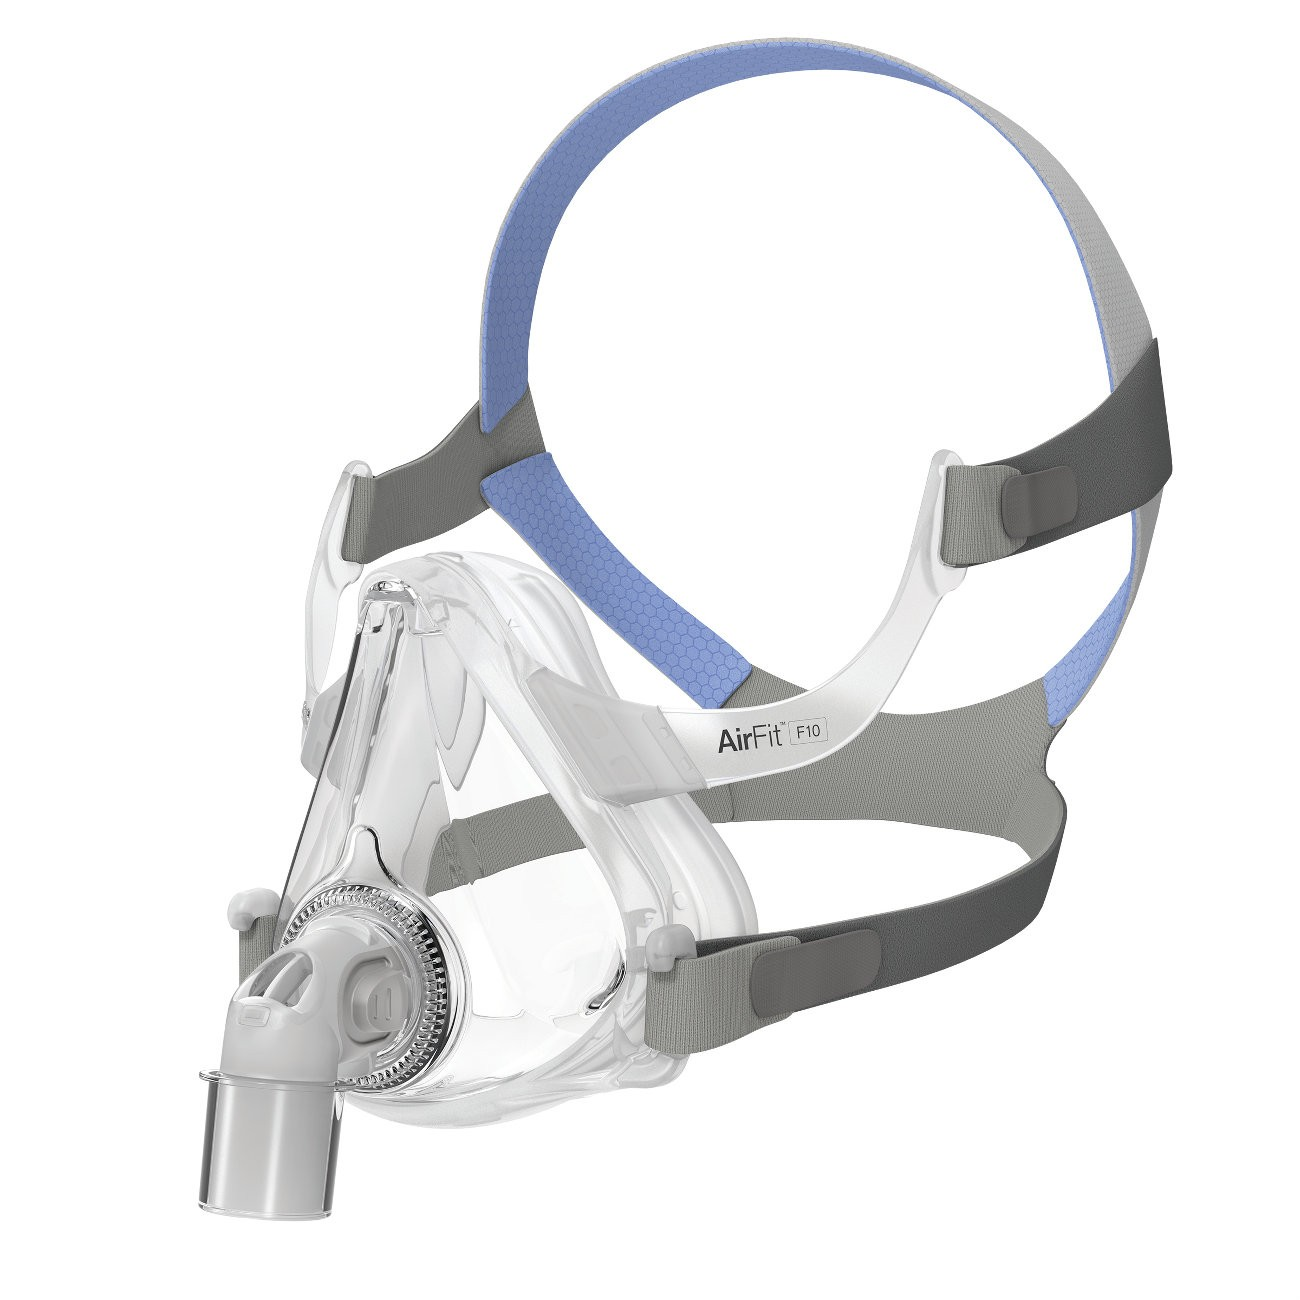 ResMed F10 Full Face Mask with Headgear - CPAP Mask Sizing Gauge